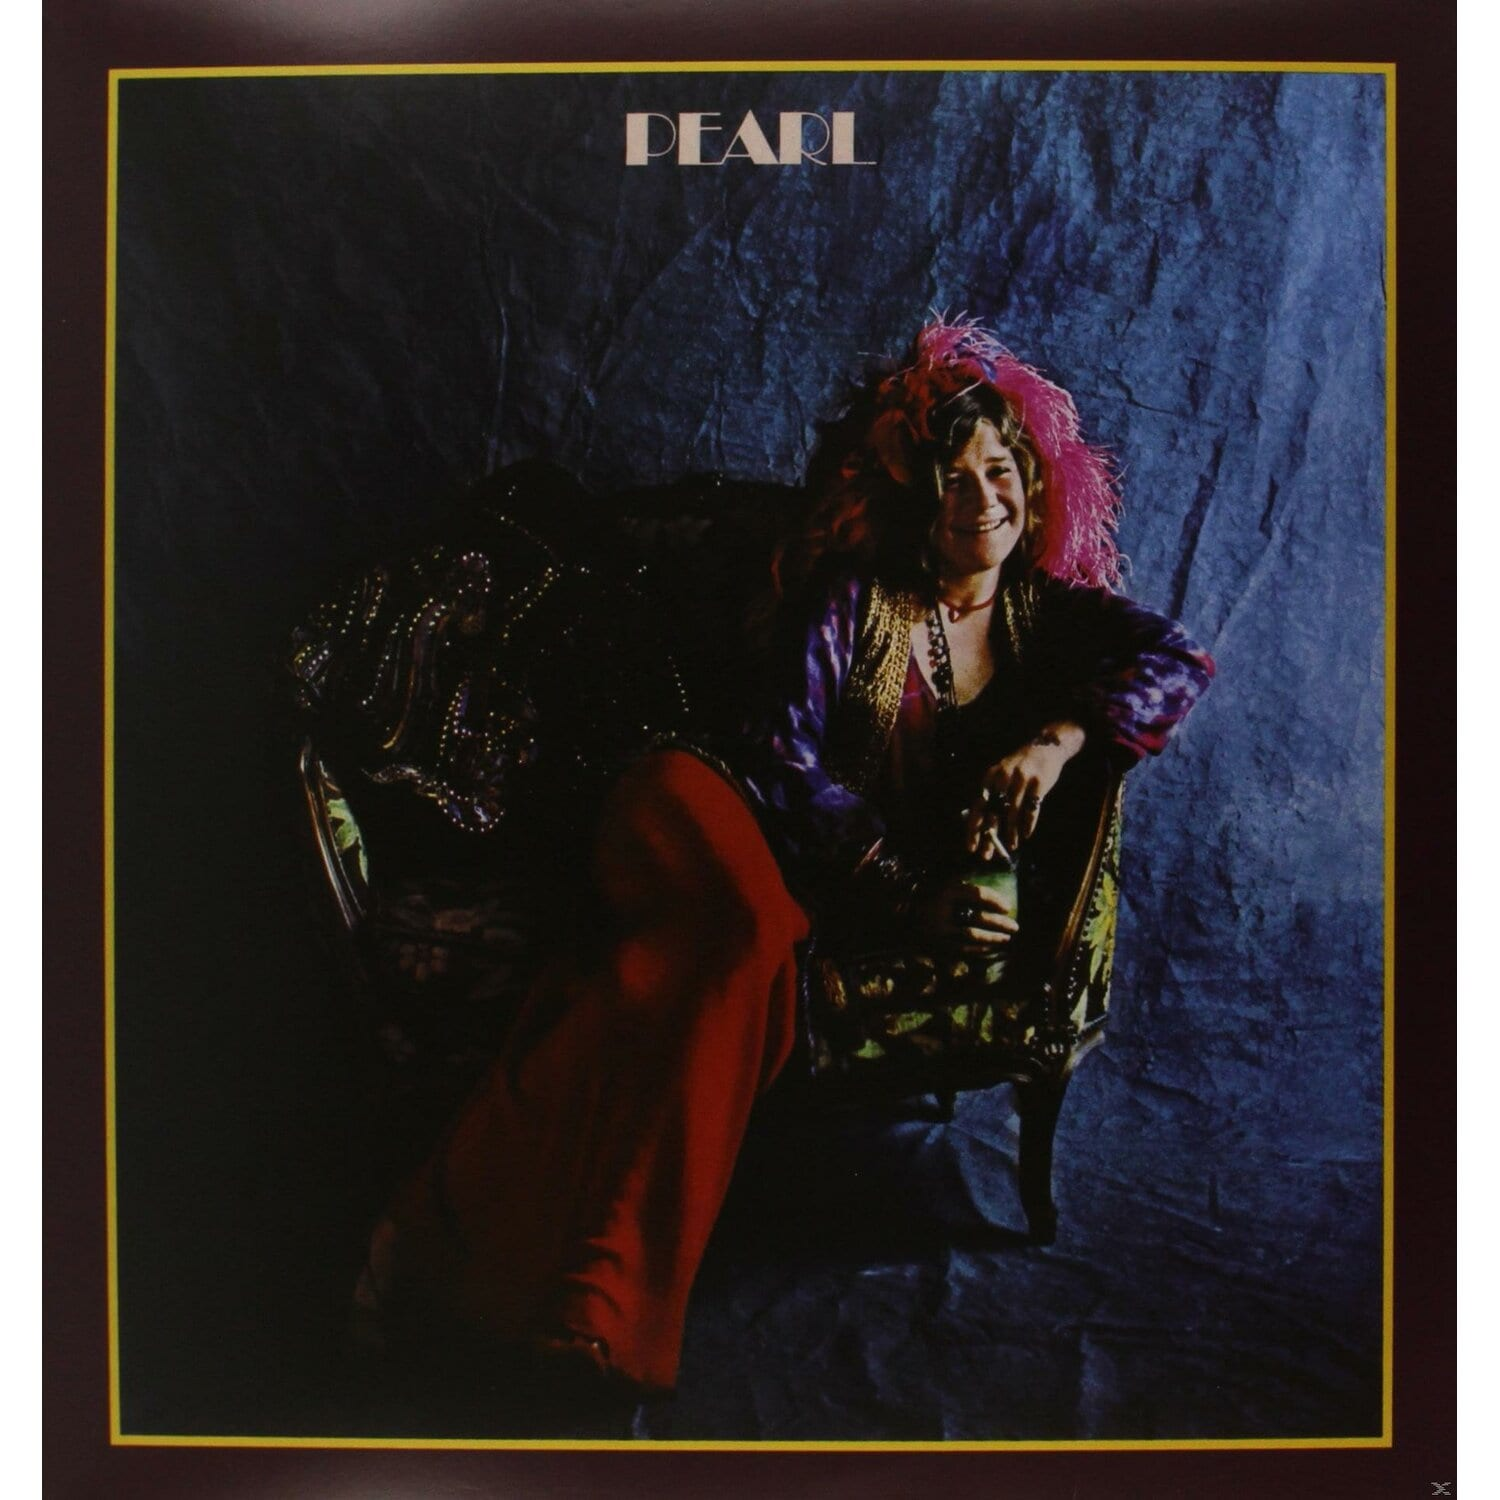 Pearl (Remastered)-180 Gram Audiophile Vinyl